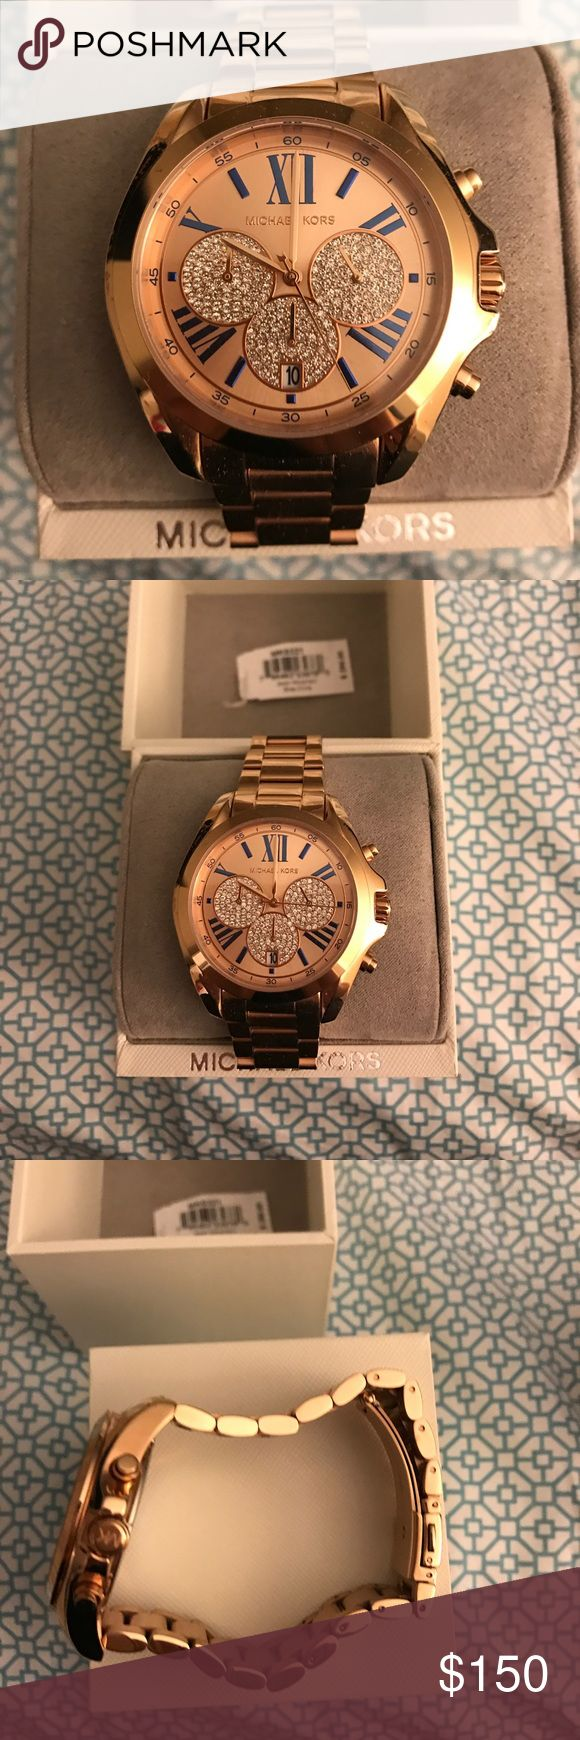 Michael Kors female watch Worn once, great condition beautiful watch. The band is a clasp and they can be taken out to reduce size Michael Kors Accessories Watches